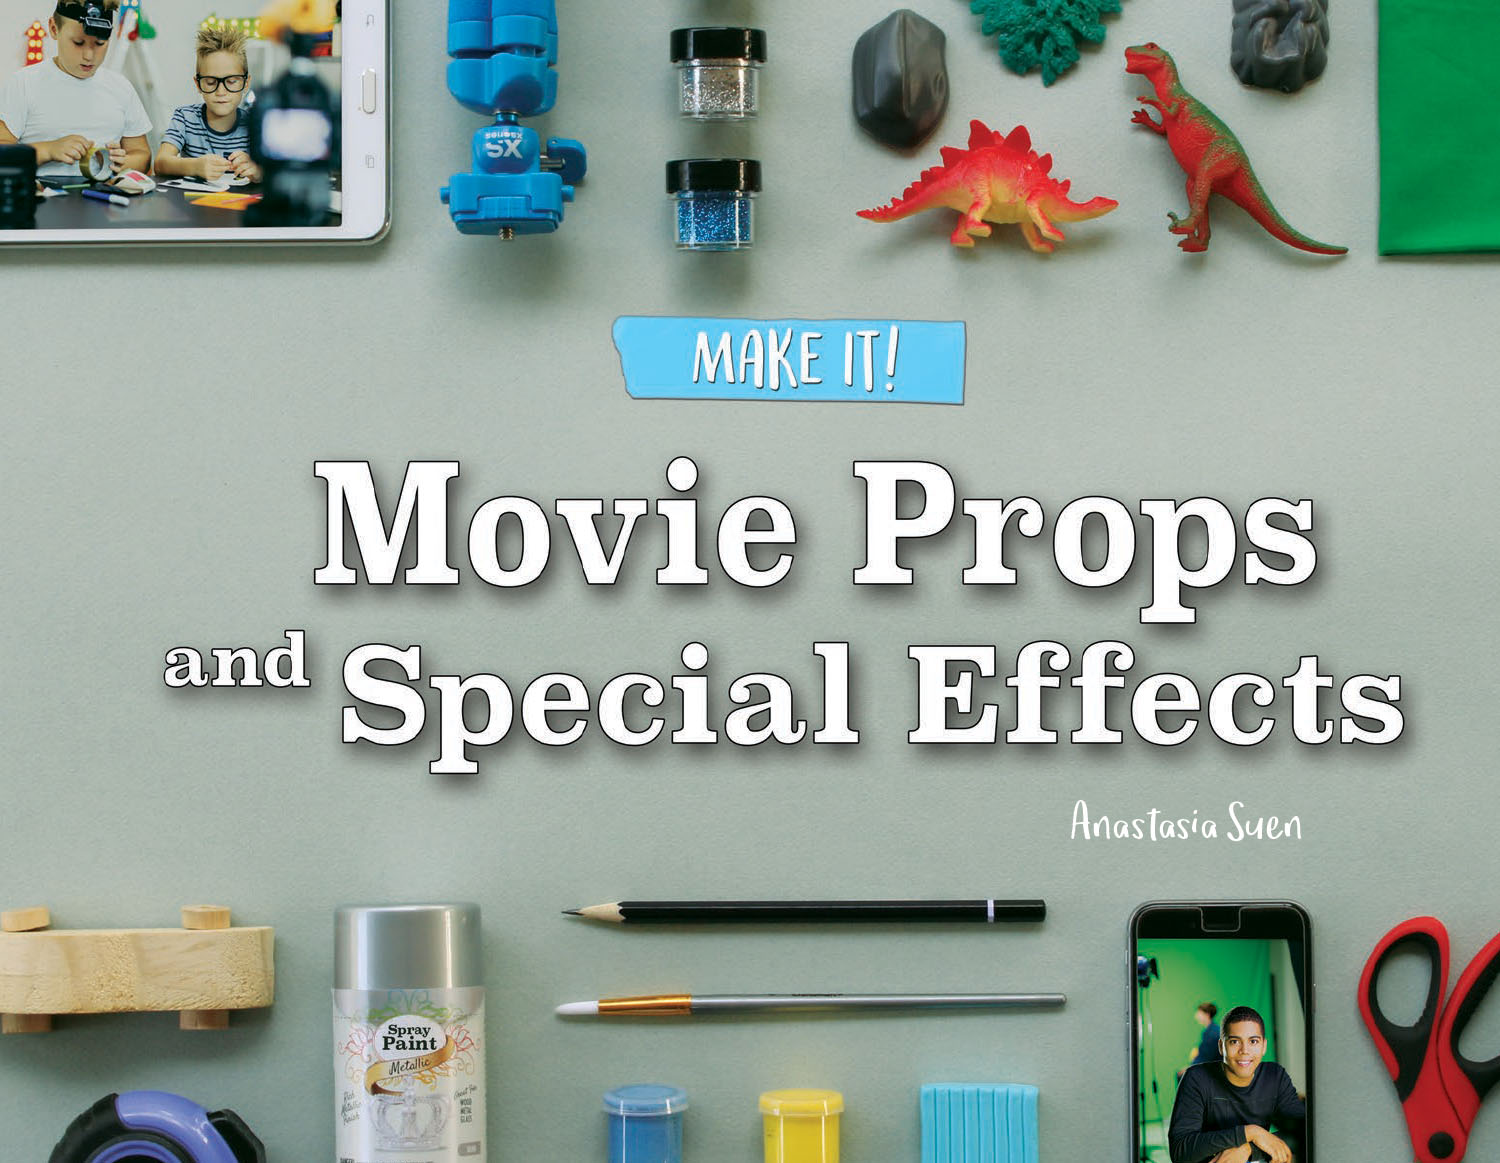 Movie Props and Special Effects